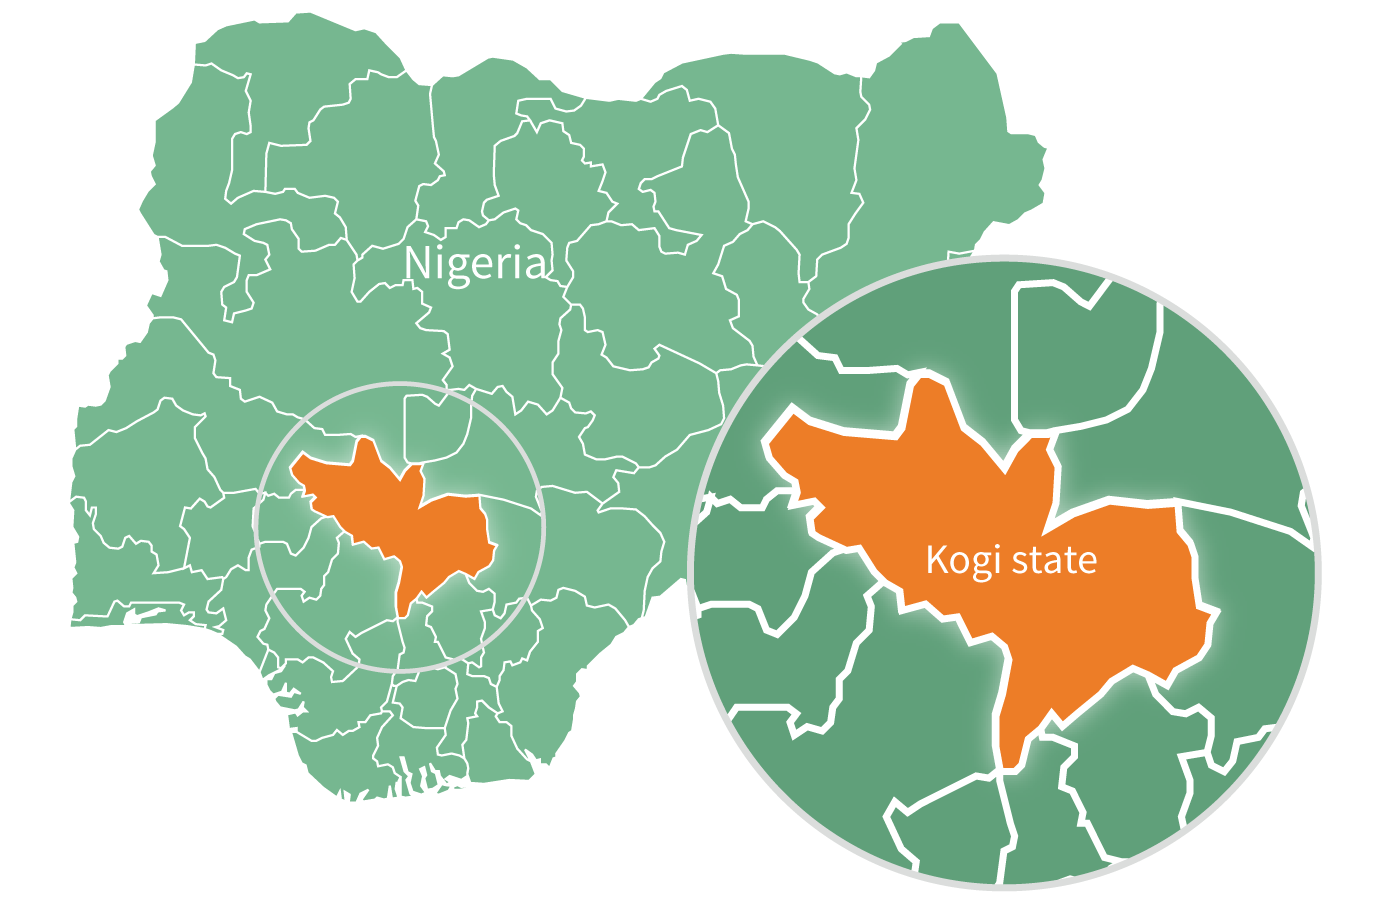 Nigeria map featuring Kogi state